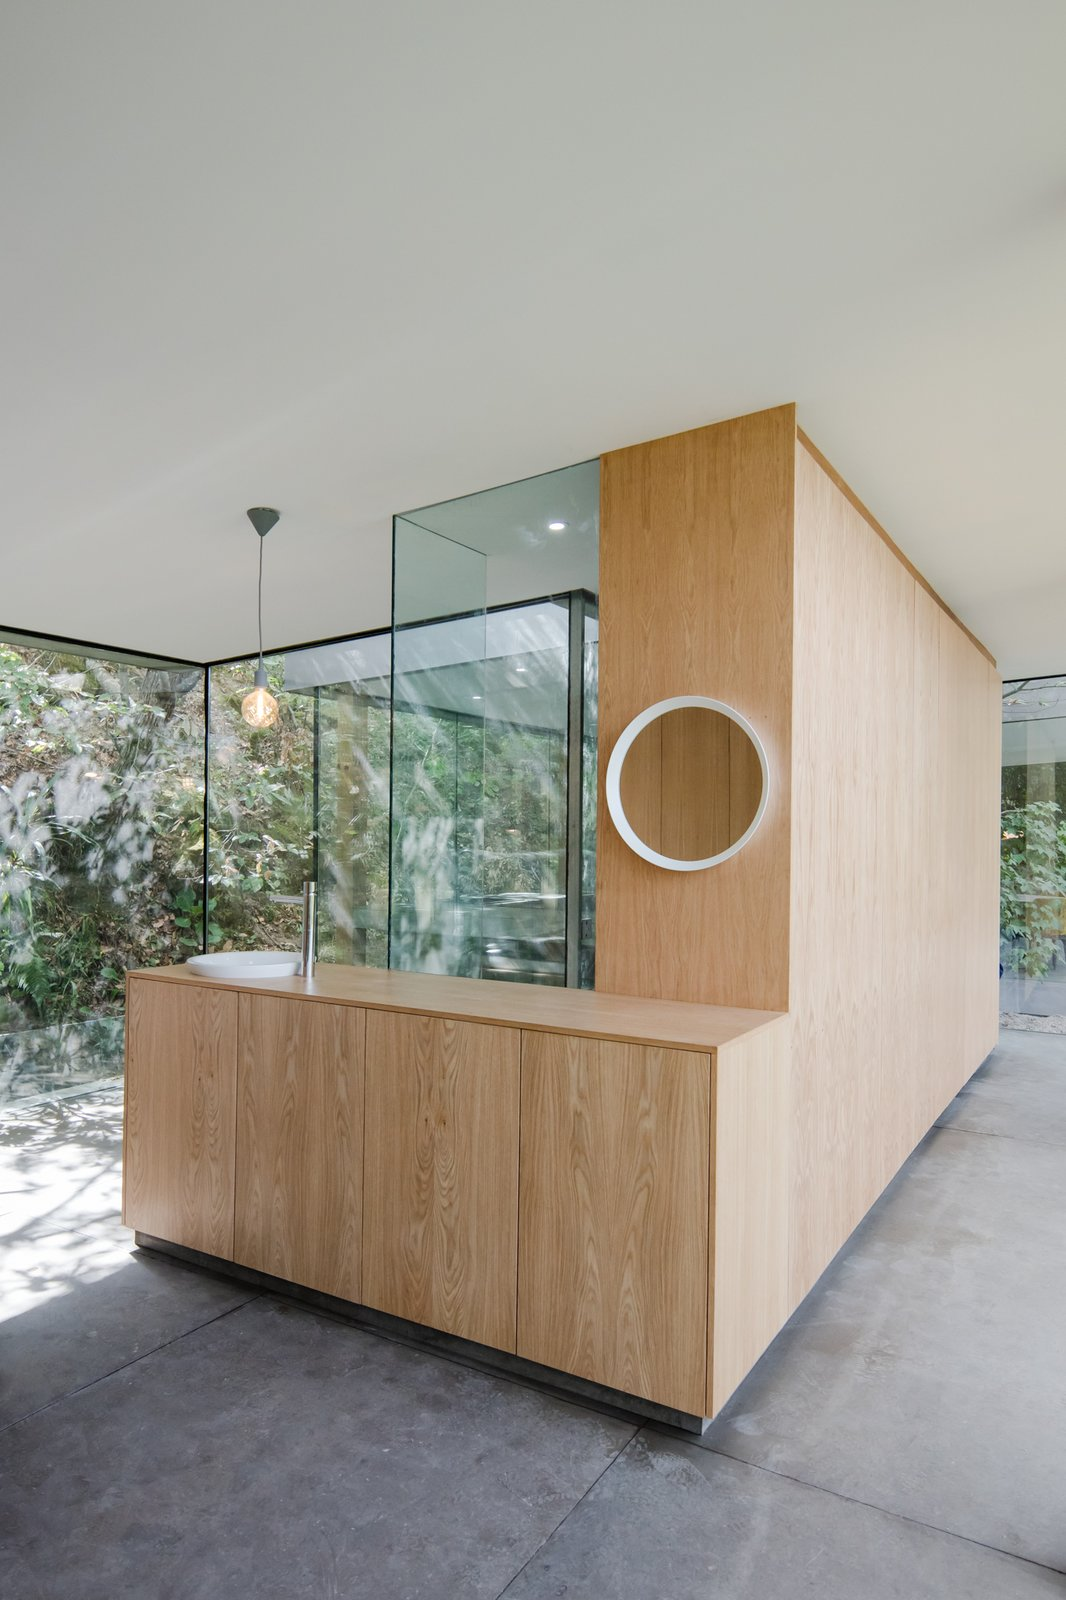 Living Room, Concrete Floor, Pendant Lighting, and Bar Bookmatched wood veneer cabinetry brings a warm, tactile feel to the interiors.  Photos from A Portuguese Glass House Uses Surrounding Foliage as a Privacy Screen